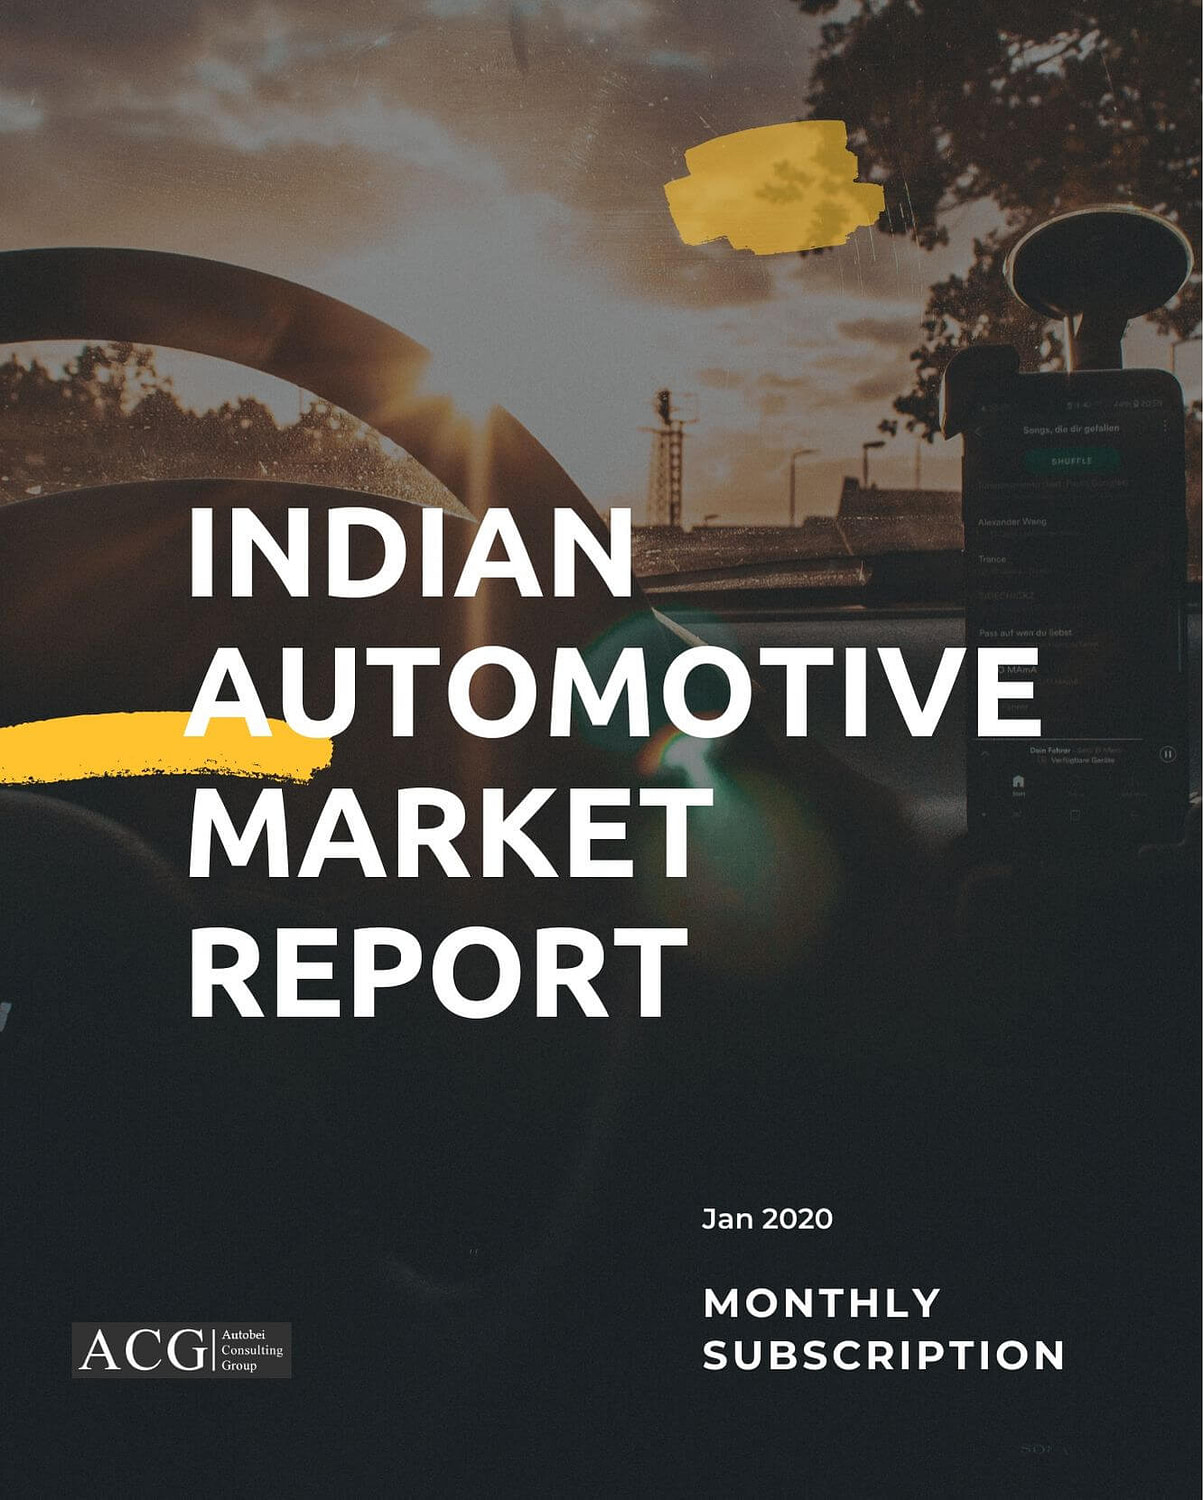 Indian Automotive market report Jan 2020